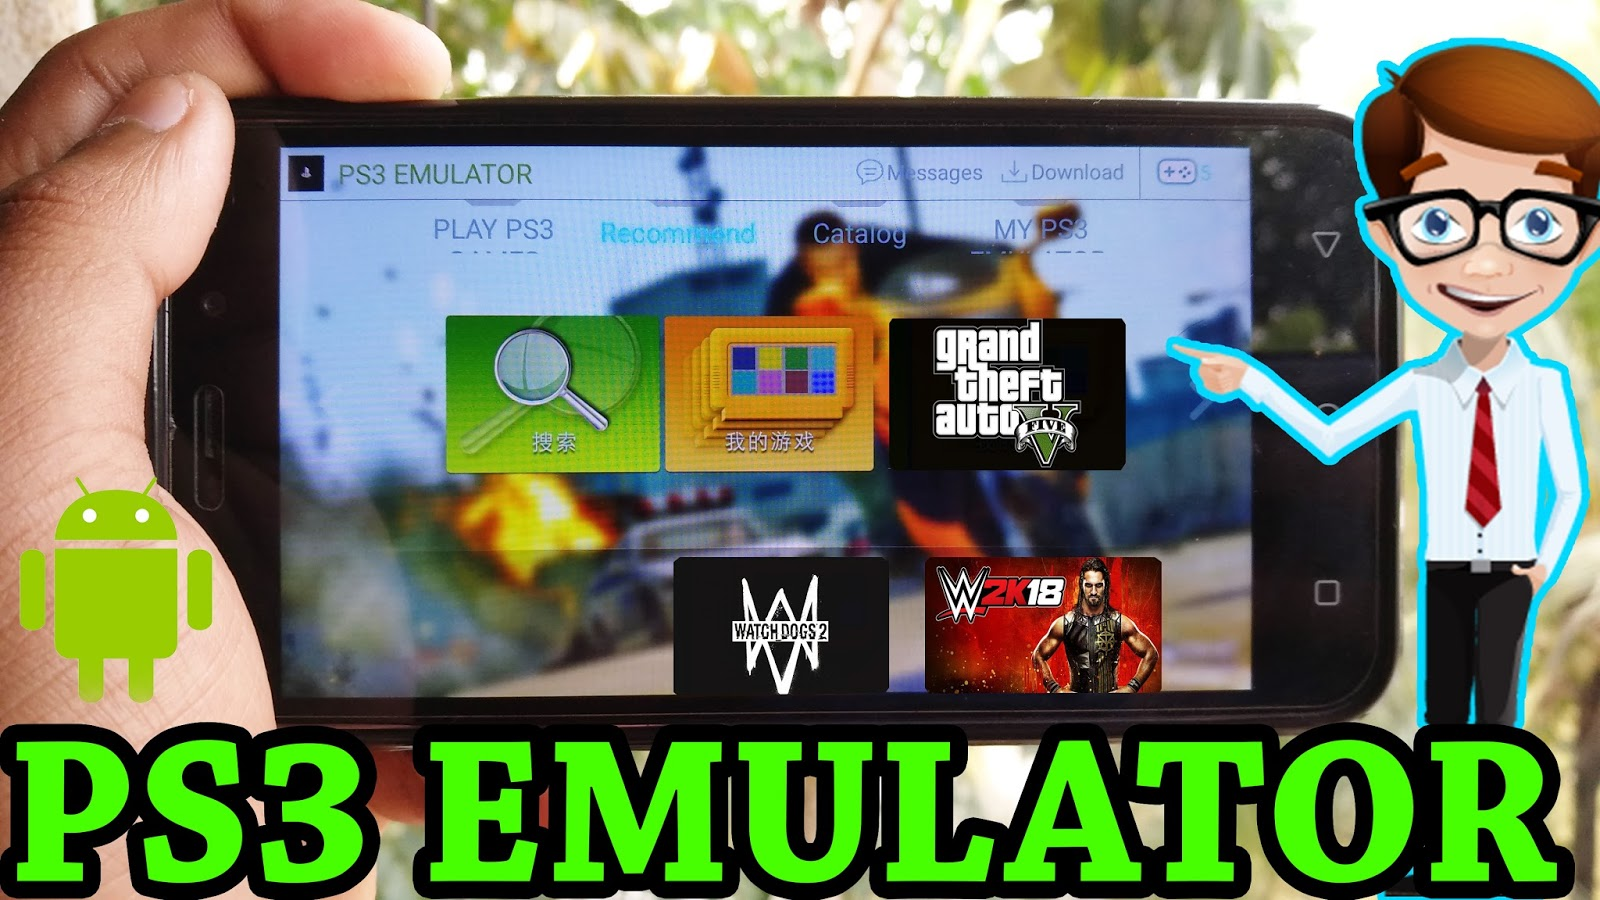 PS3 Emulator for Android New Version | Play GTA 4,GTA 5,Watch Dogs 2